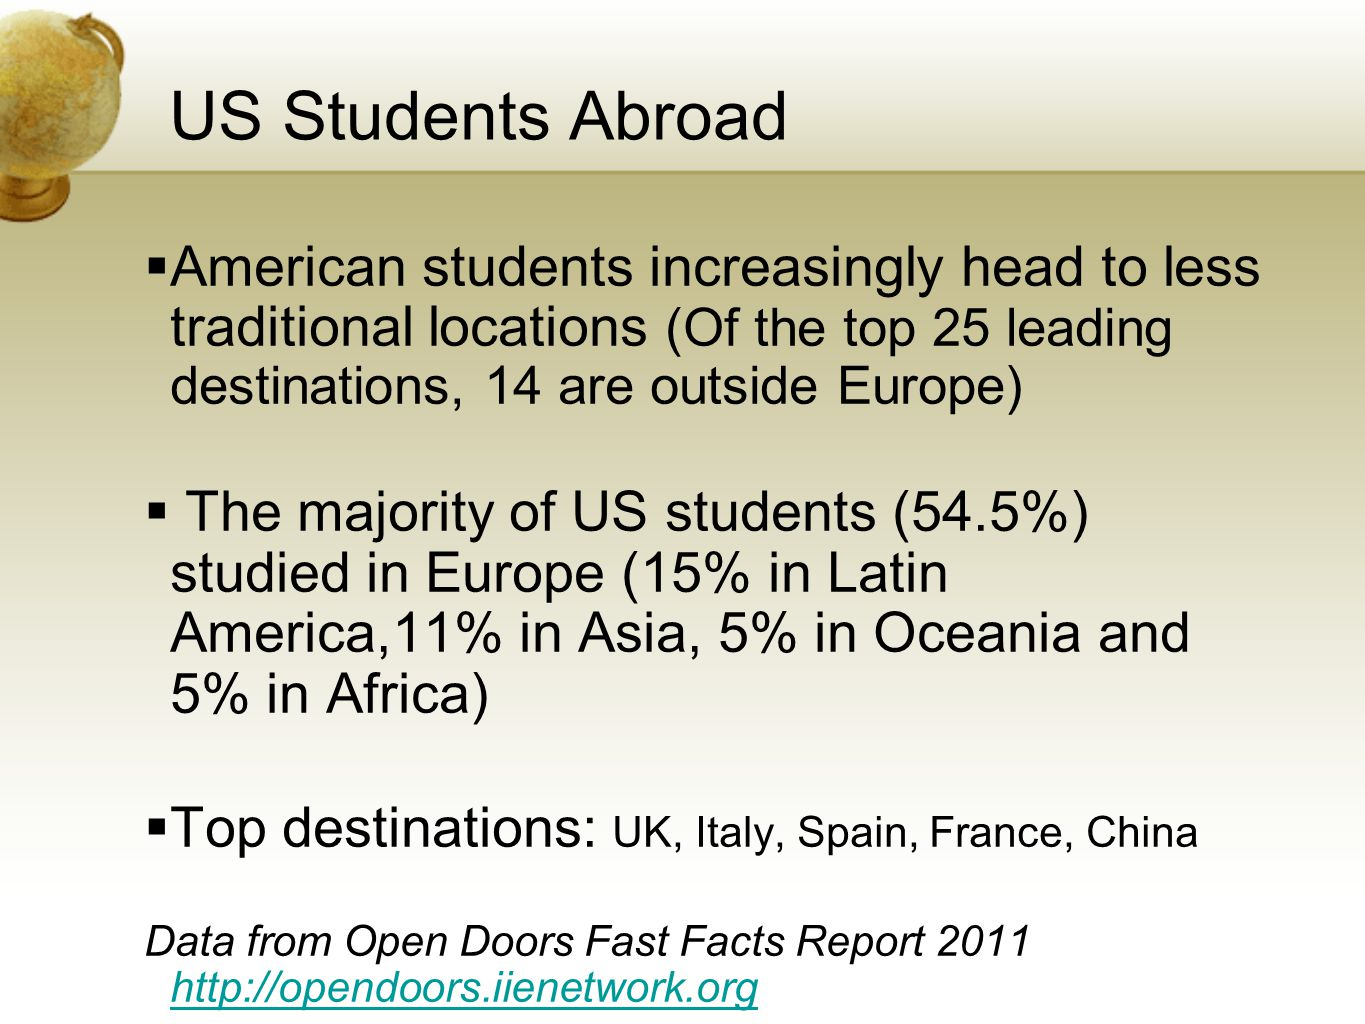 US Students Abroad American students increasingly head to less traditional locations (Of the top 25 leading destinations, 14 are outside Europe) The majority of US students (54.5%) studied in Europe (15% in Latin America,11% in Asia, 5% in Oceania and 5% in Africa) Top destinations: UK, Italy, Spain, France, China Data from Open Doors Fast Facts Report 2011 http://opendoors.iienetwork.org http://opendoors.iienetwork.org